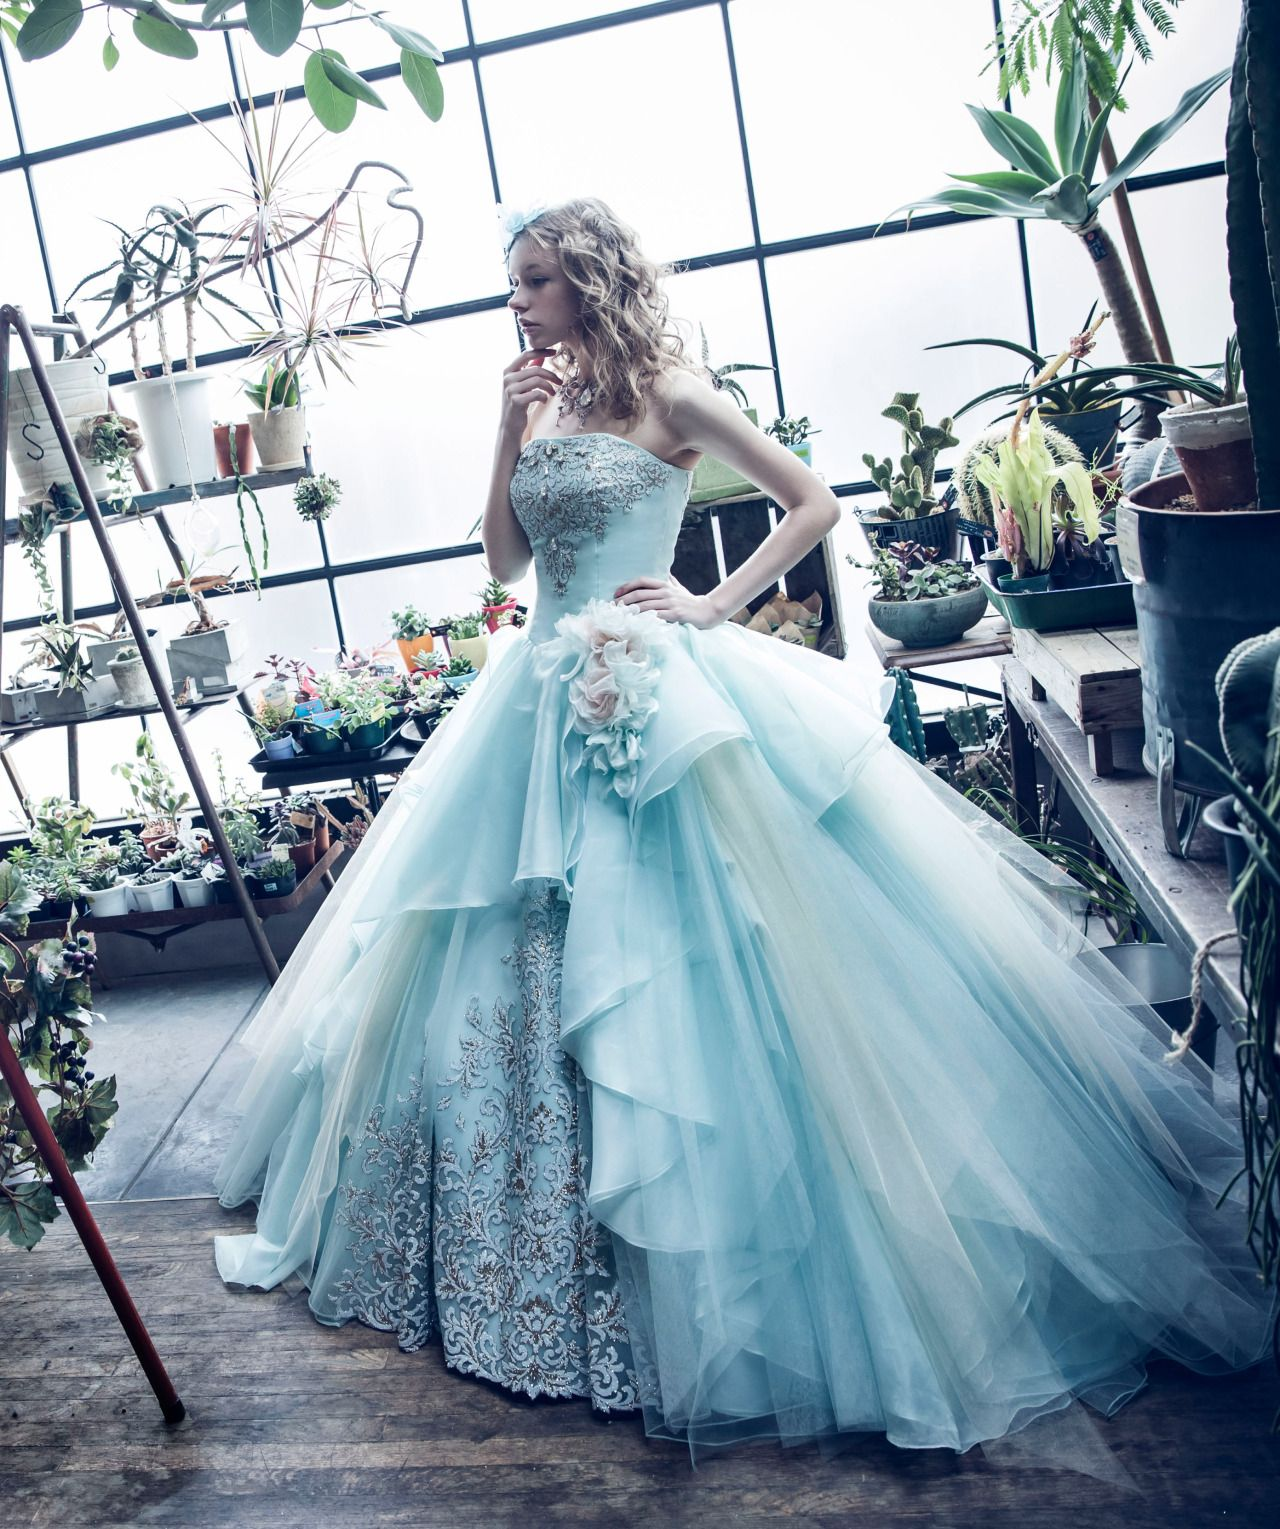 25 Best Ideas About Medieval Wedding Dresses On Pinterest: Best 25+ Ice Blue Dress Ideas On Pinterest